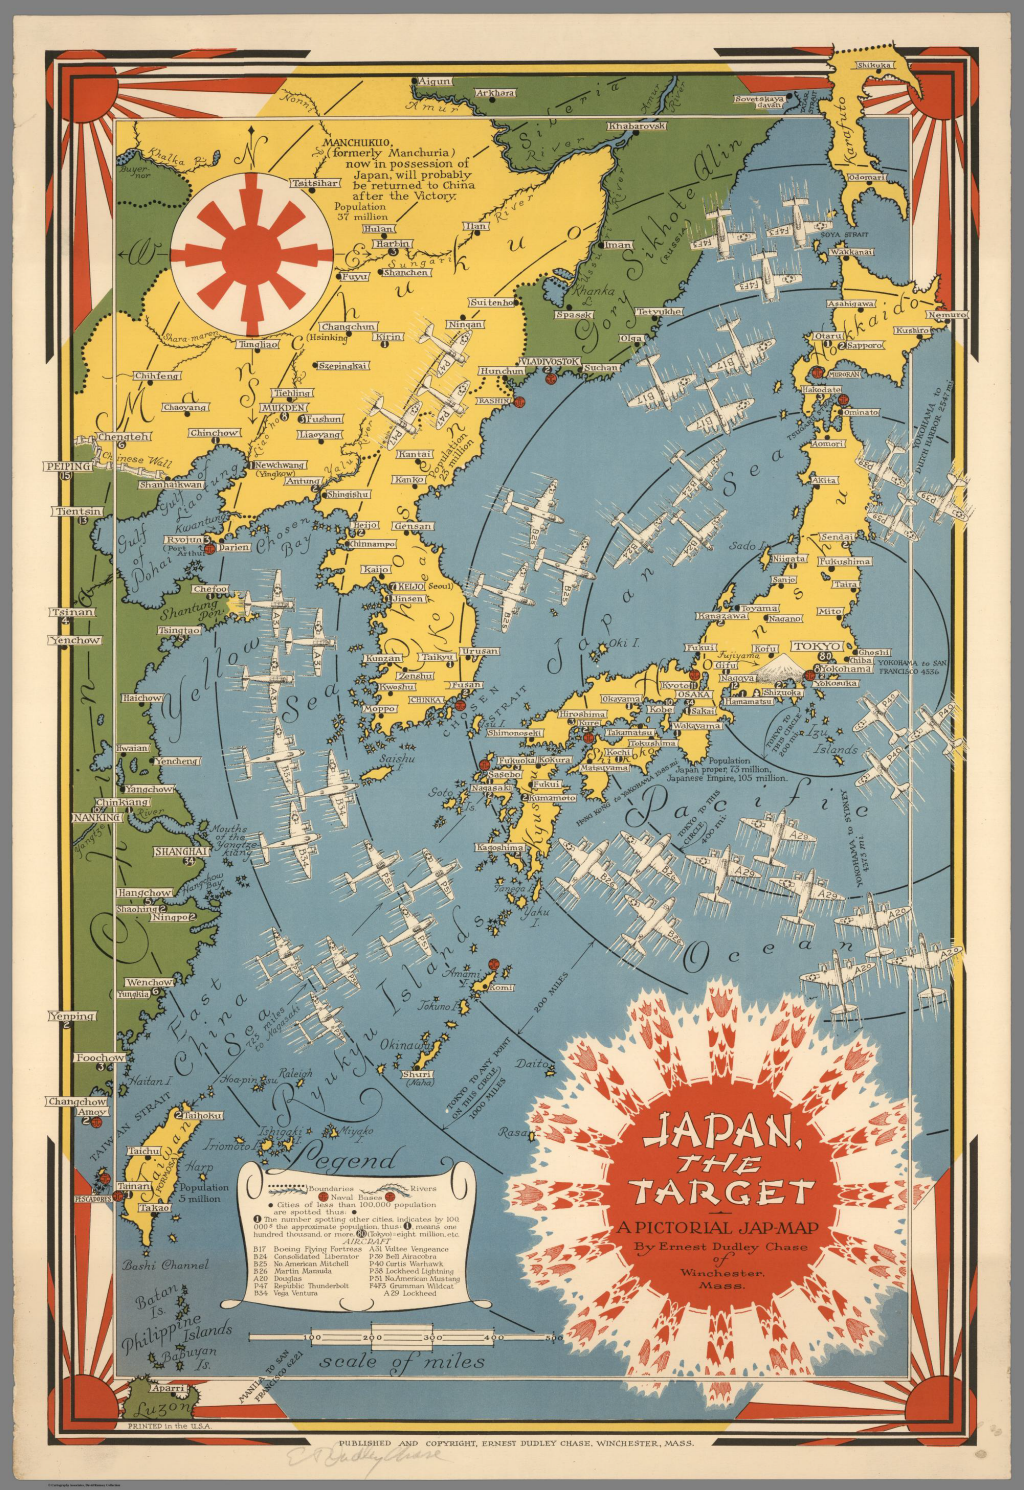 Japan the target by ernest dudley chase 1942 cartography mapcarte japan the target a pictorial jap map by ernest dudley chase 1942 gumiabroncs Images